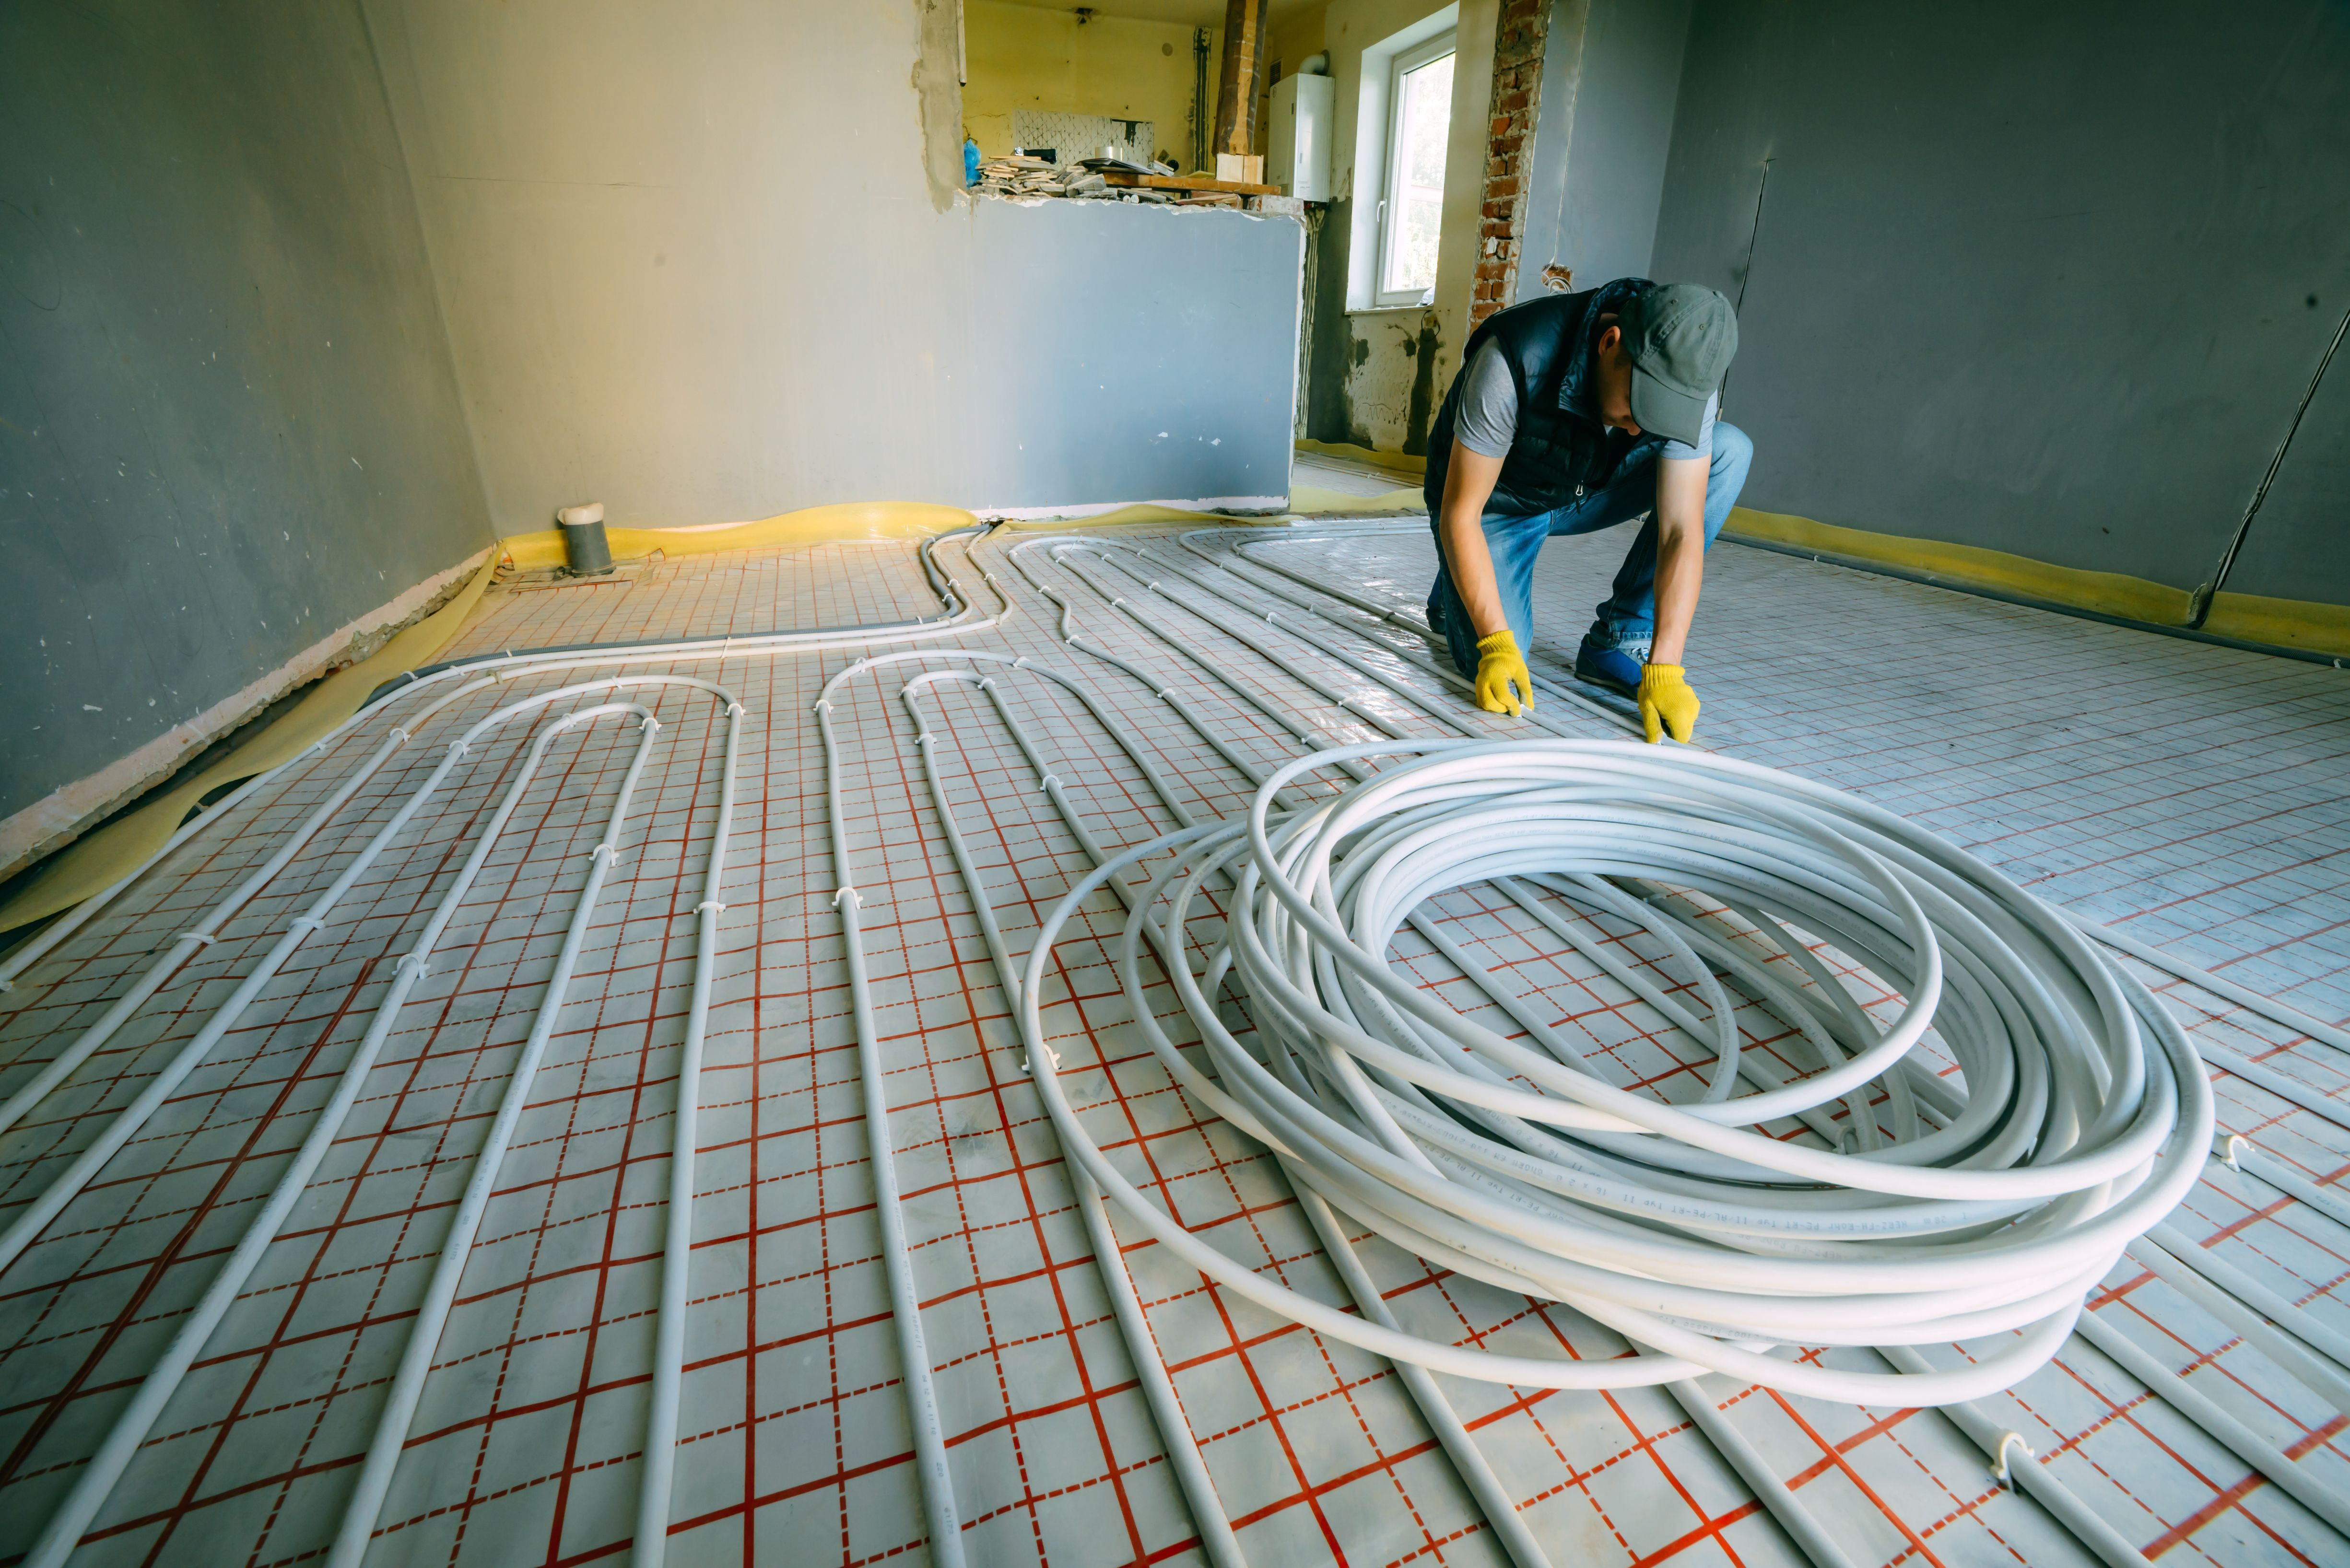 A worker installing pipes for an underfloor heating system in a room with grey walls and a doorway under construction .jpg